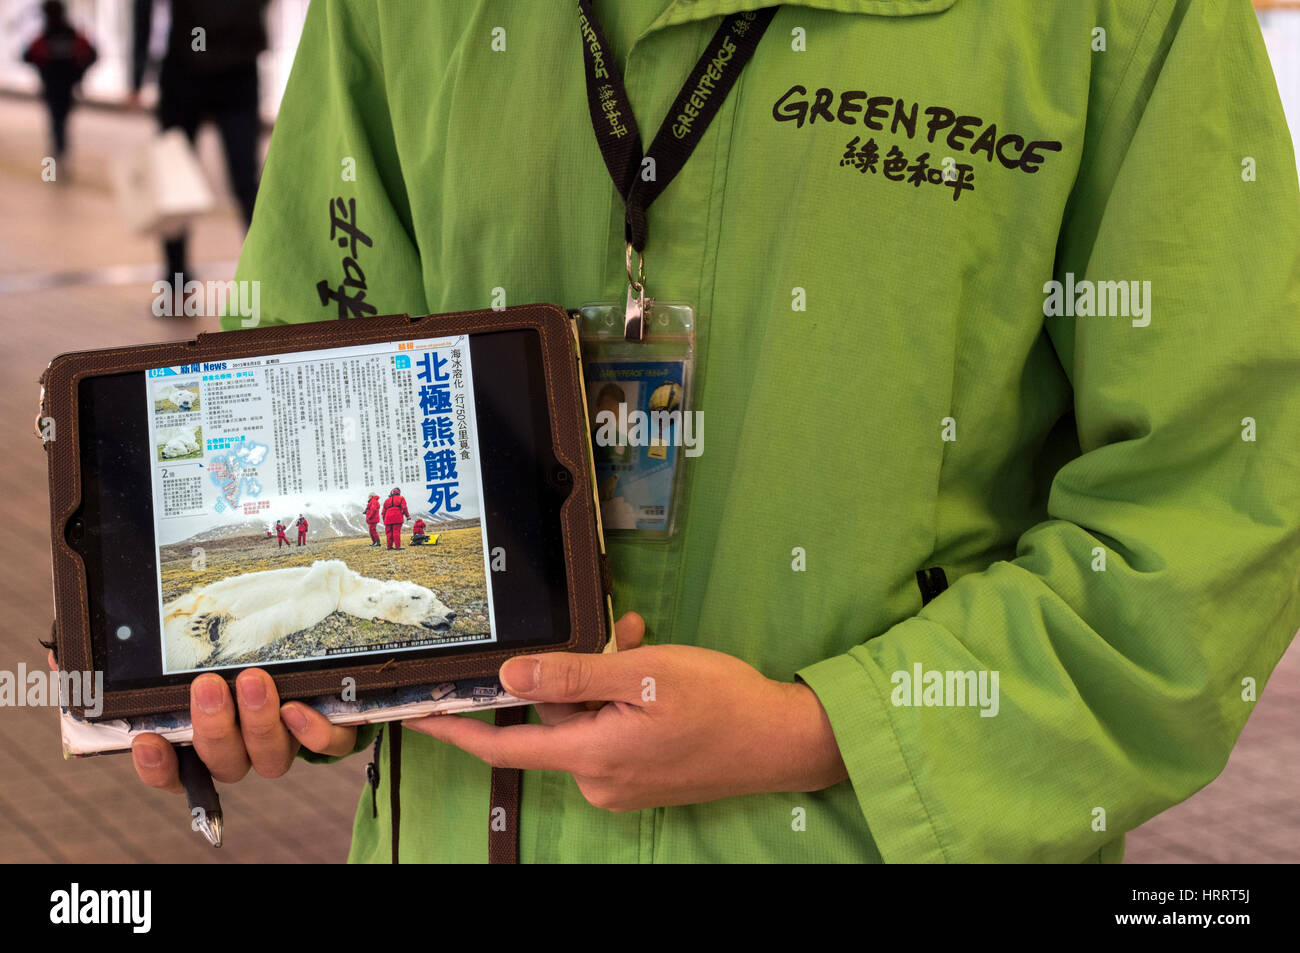 Greenpeace activists gathering signatures for endangered species, Polar bears, Hong Kong, China. - Stock Image